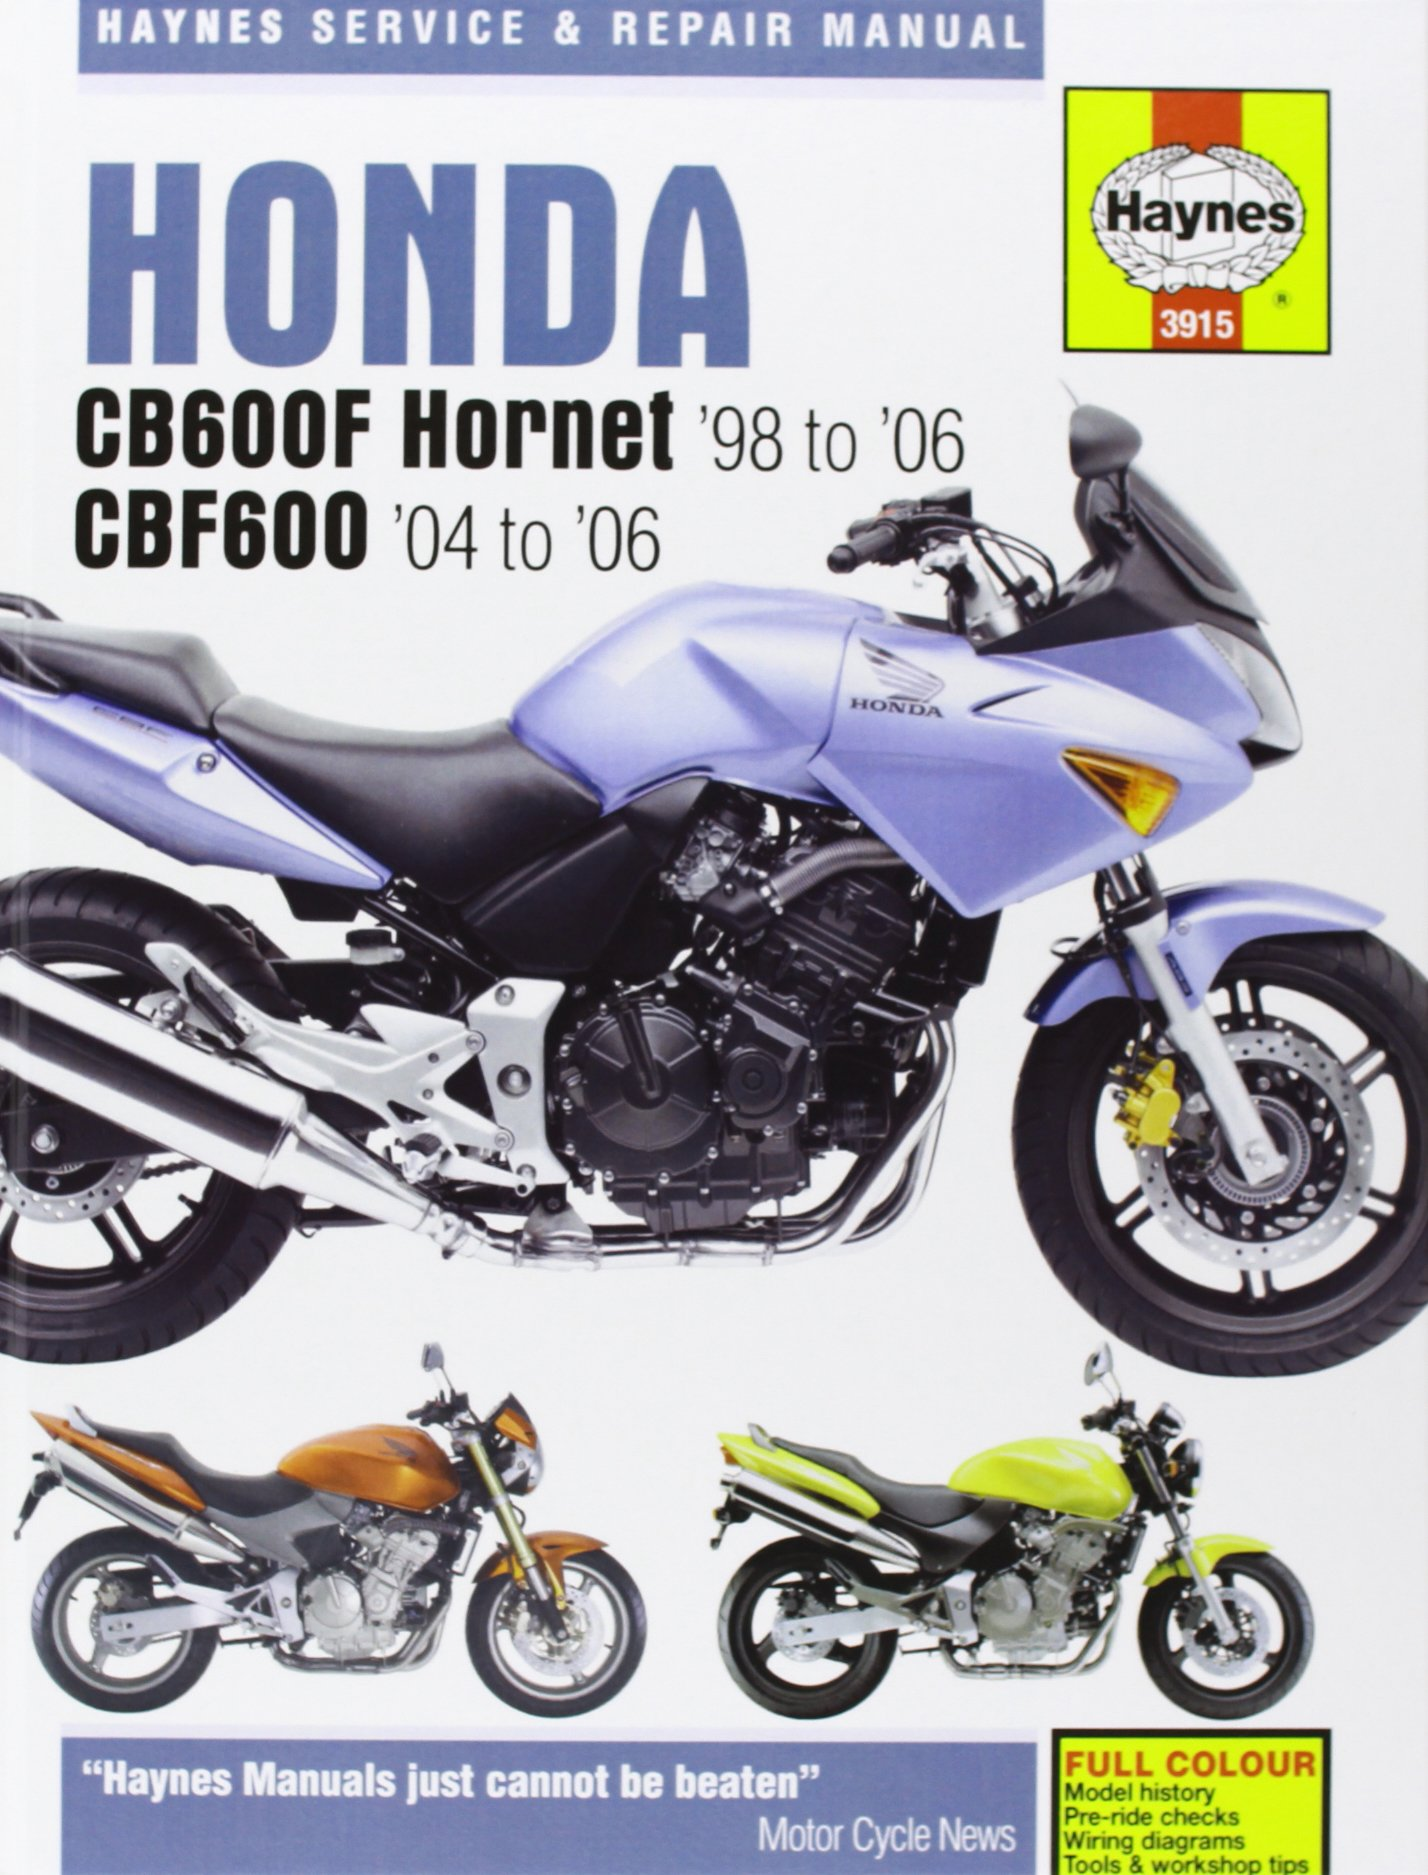 Honda CB600F/FS Hornet and CBF600 Service and Repair Manual: 1998 to 2006  (Haynes Service and Repair: mather-phil: 9781844255948: Amazon.com: Books